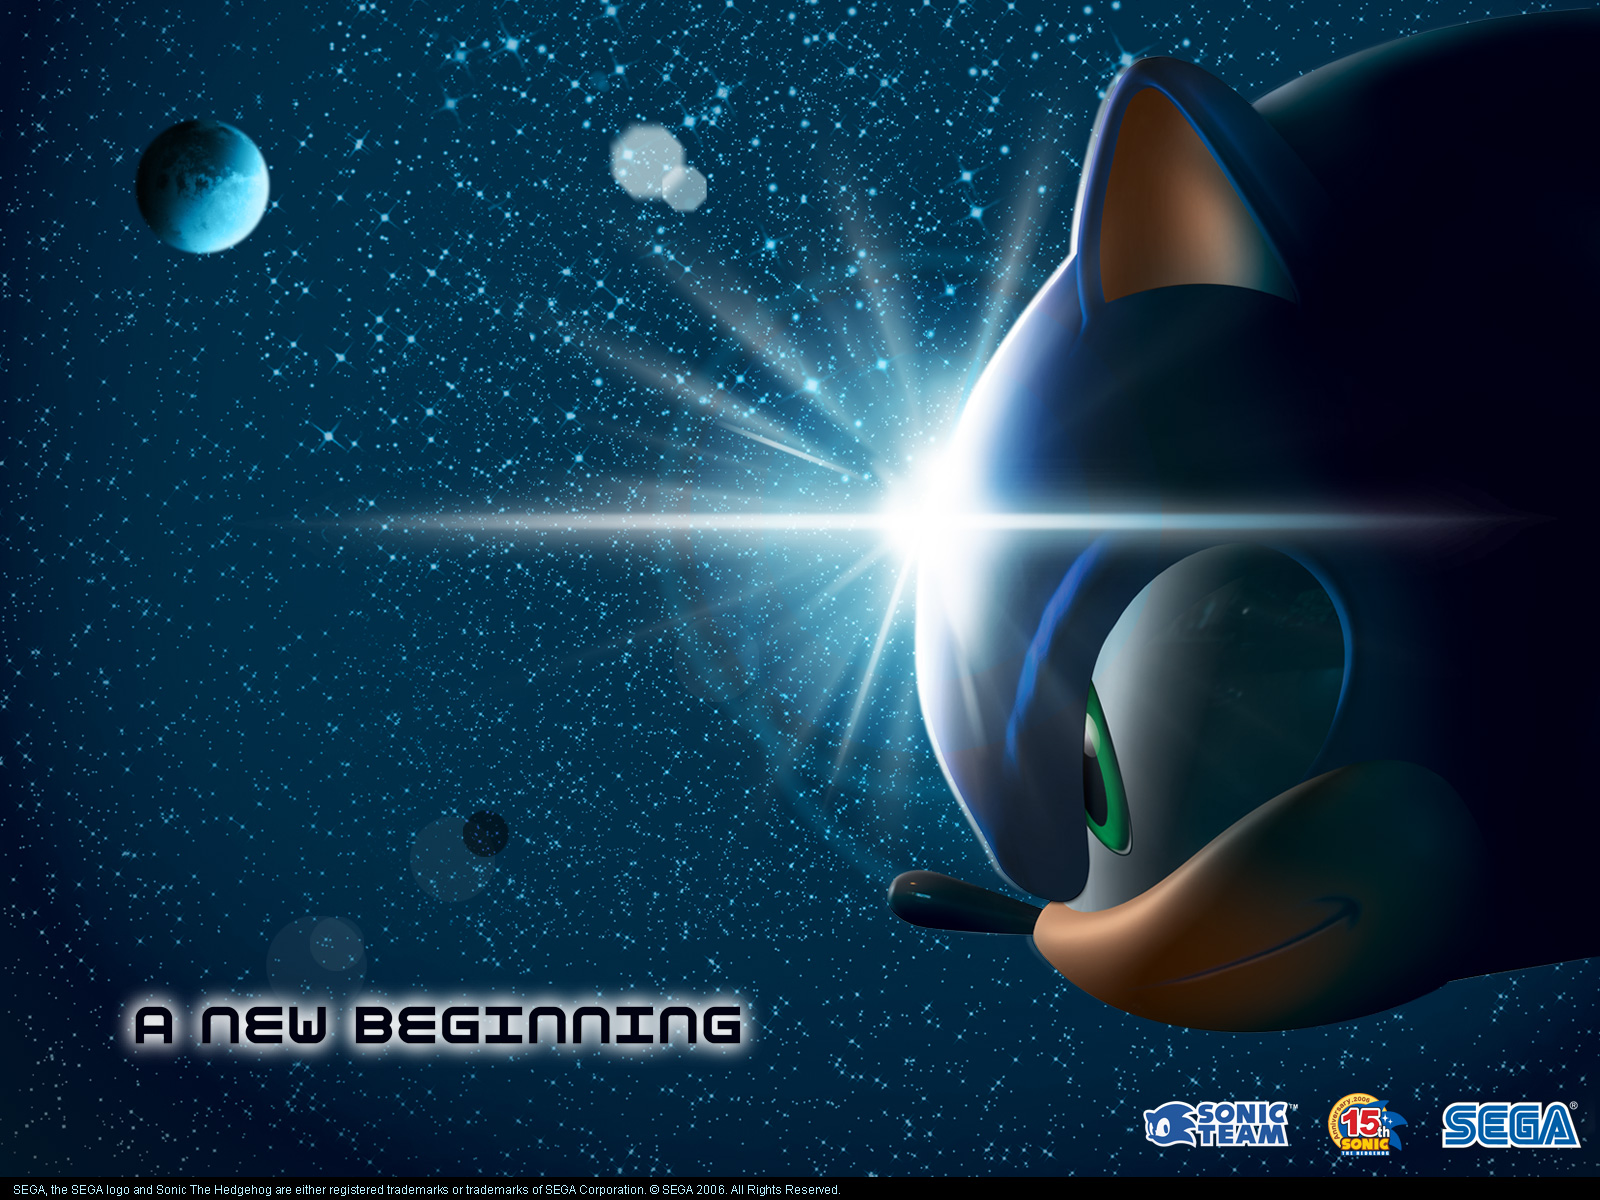 Fond d'ecran Sonic Beginning - Wallpaper